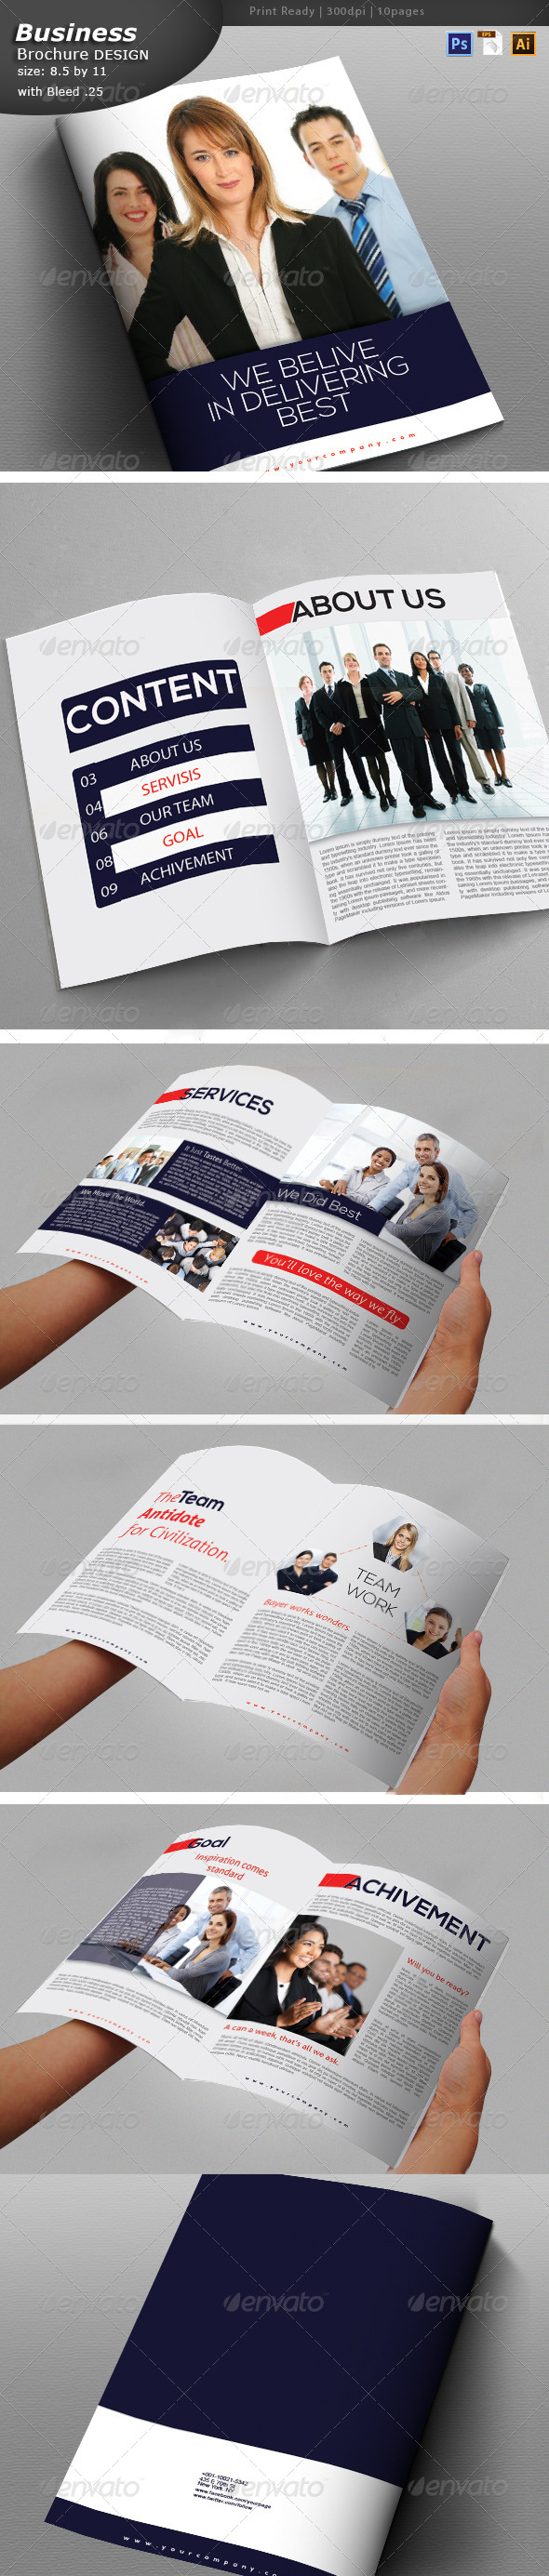 GraphicRiver Business Brochure Design 6210925